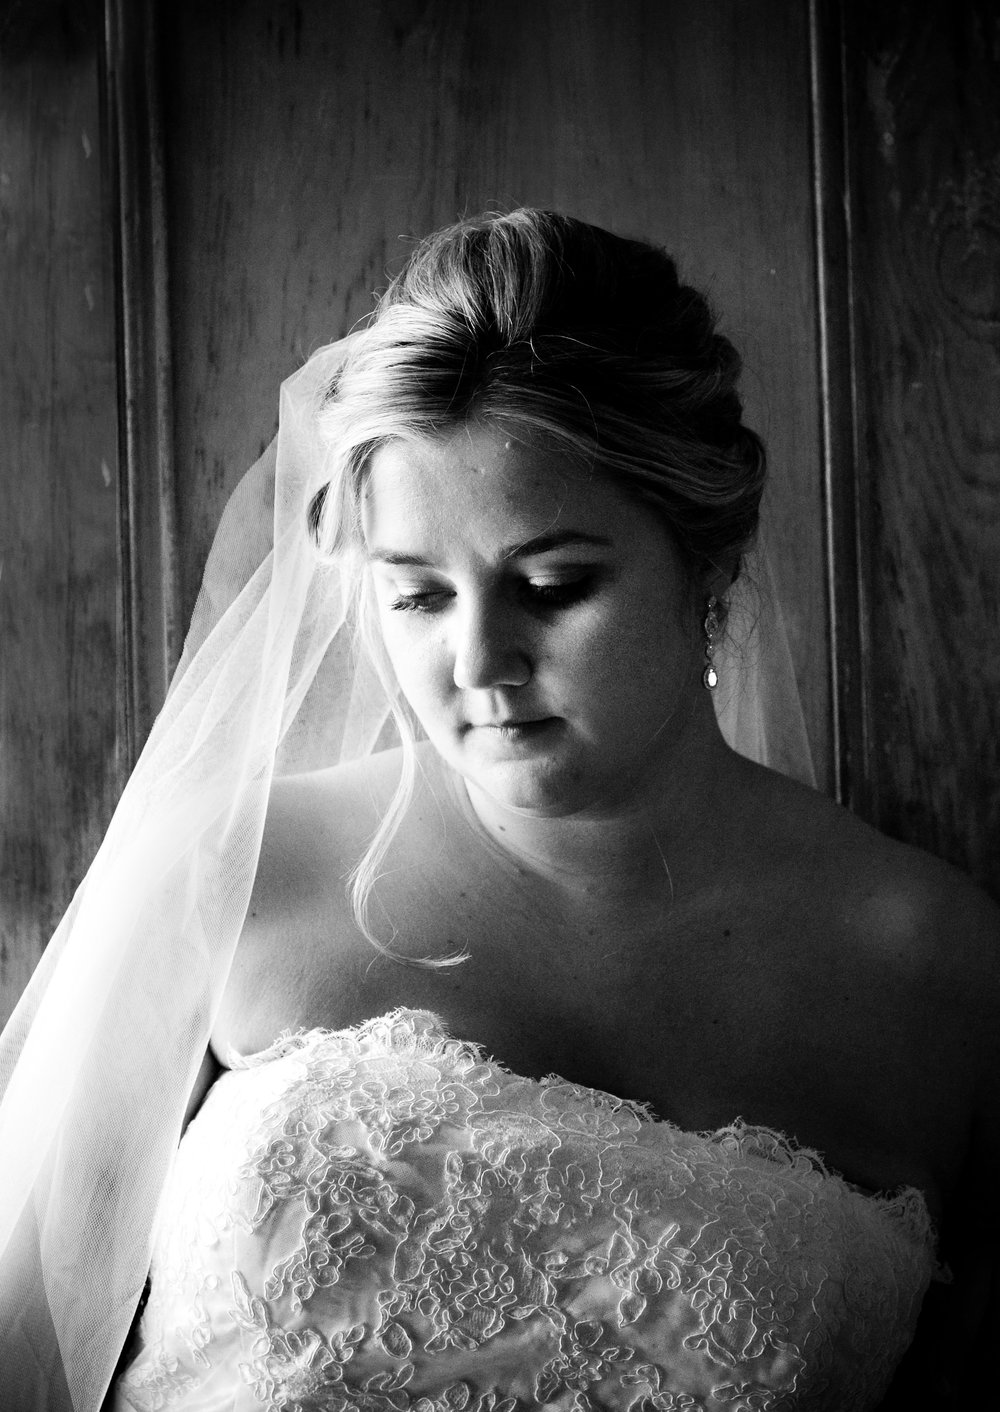 Classic Black & White Portrait of bride in soft window light. Taken at William Skelton House at Old Town Manor in Key West, Florida. © Karrie Porter